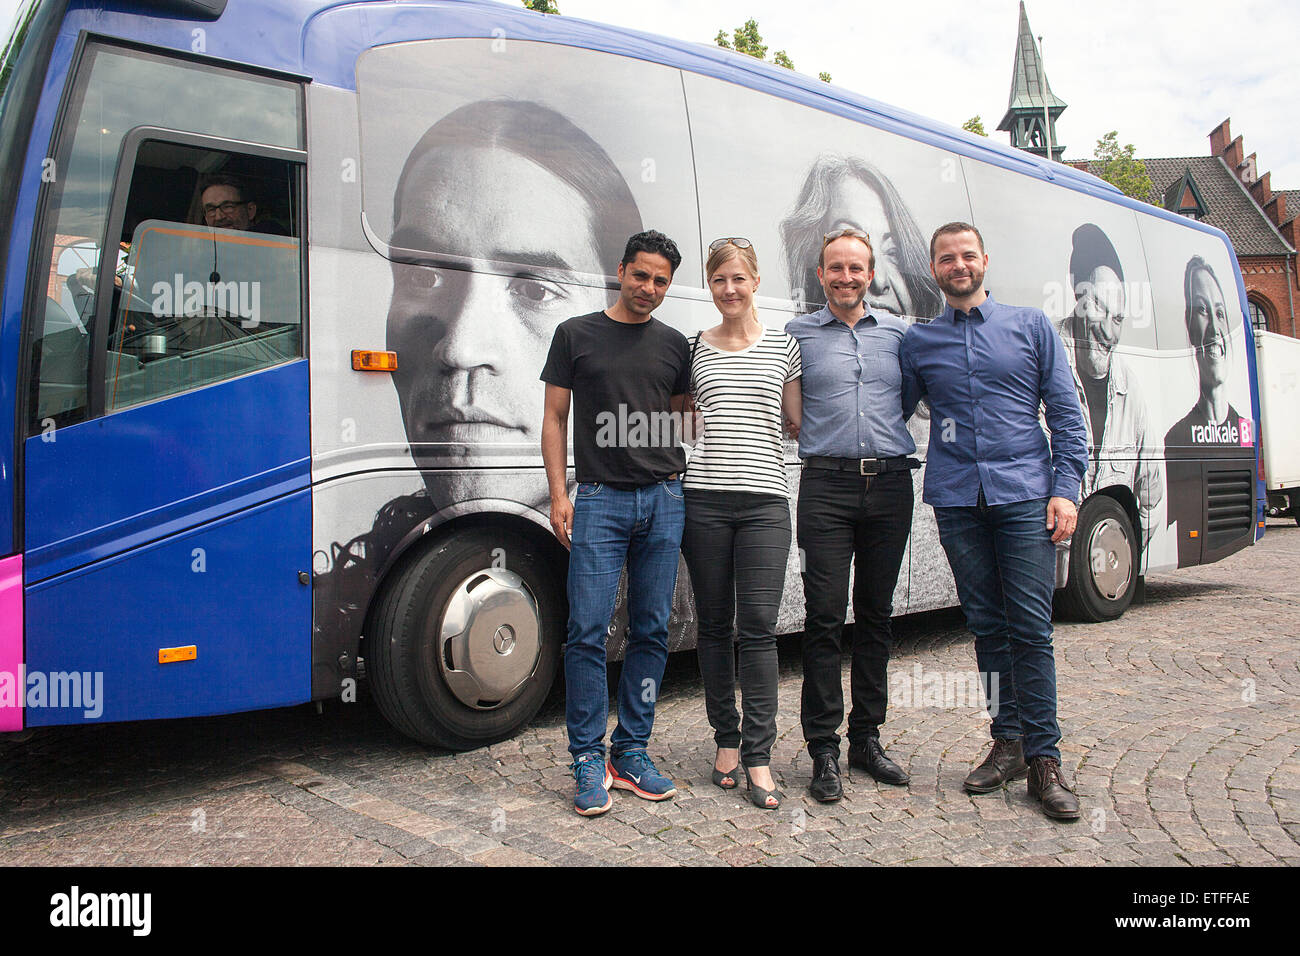 Hilleroed, Denmark, June 13th, 2015: The Danish Radikal Venstre (read: The Social Liberal) leadership poses in front - Stock Image